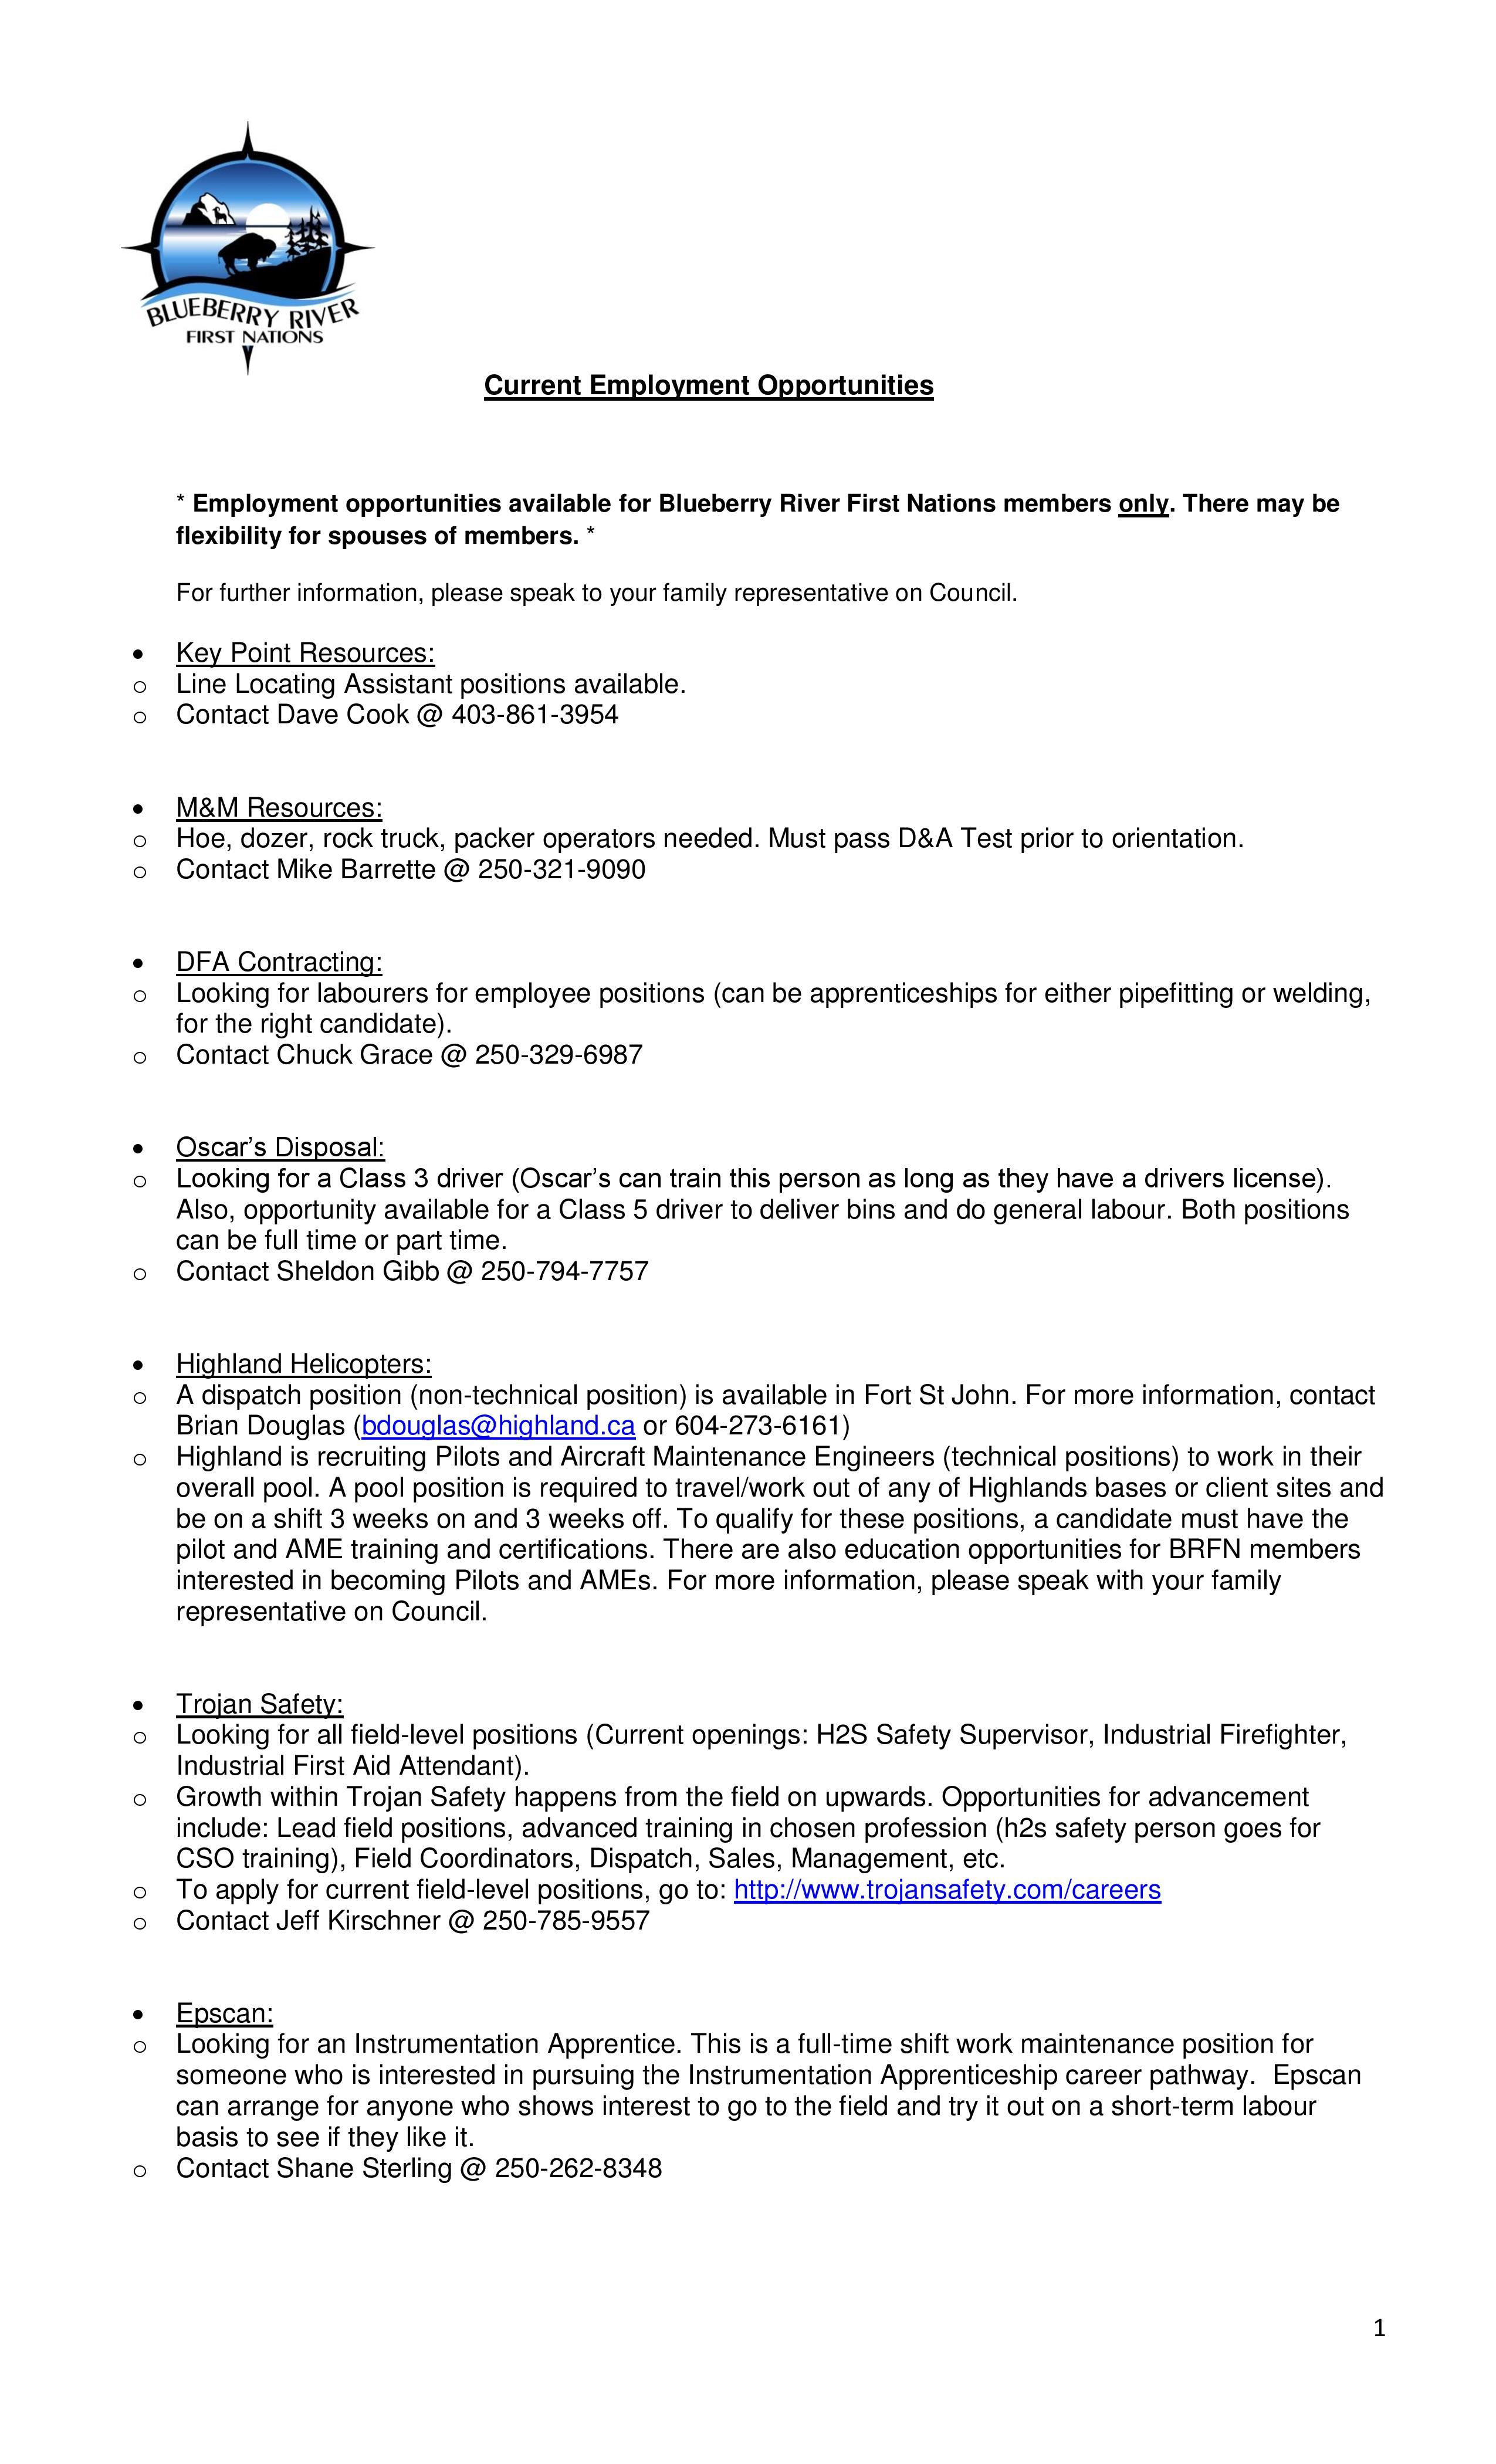 BRFN Service Provider-Current Employment Opportunities-September 2018-page-001